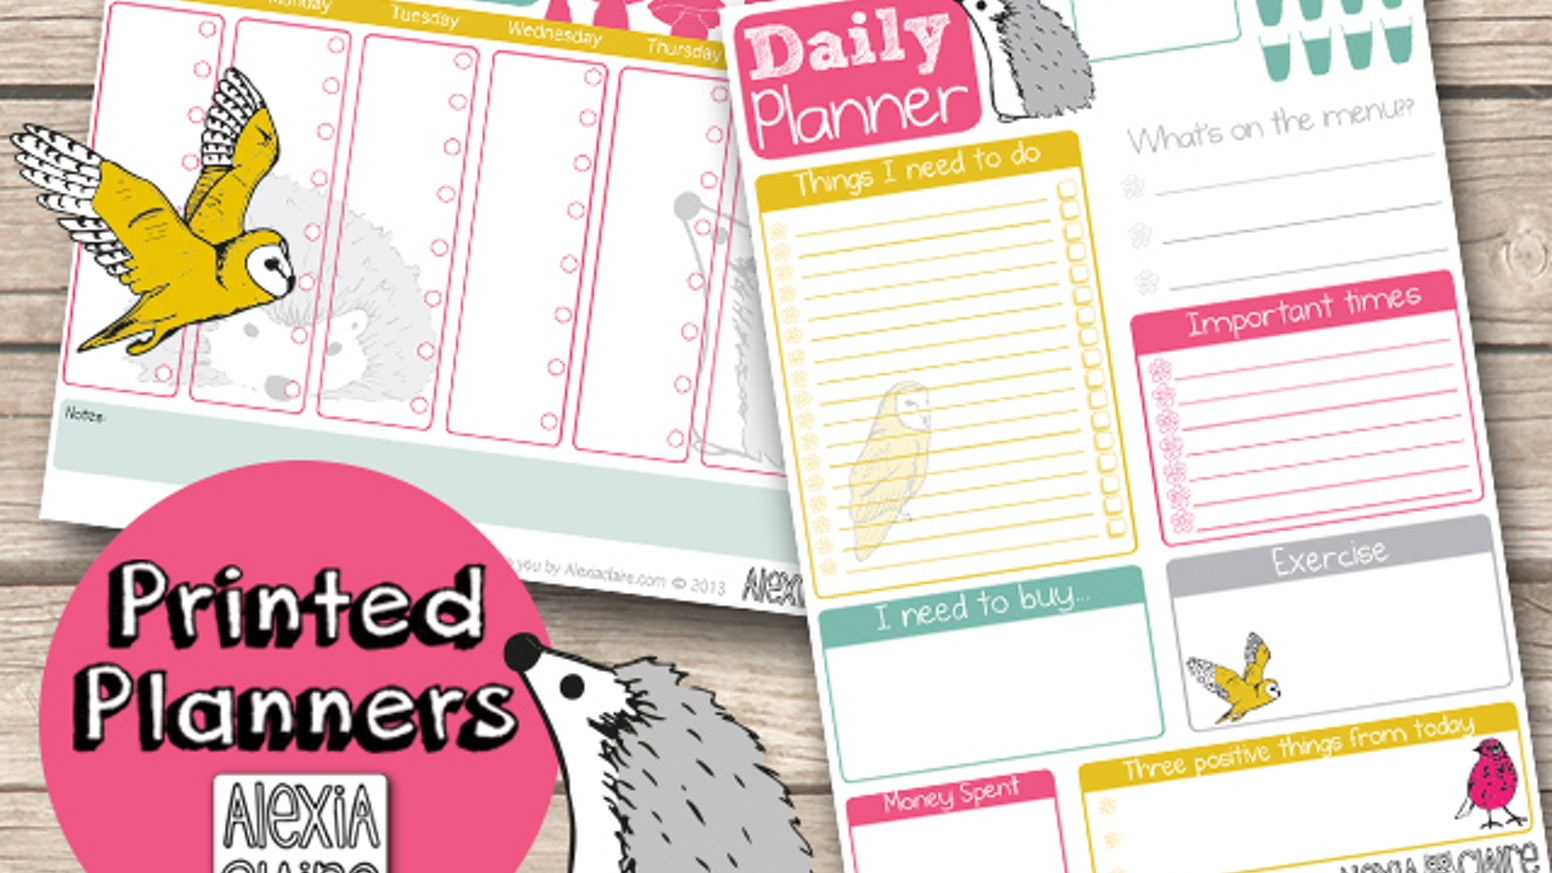 desk planner pads to plan your week in style by alexia claire